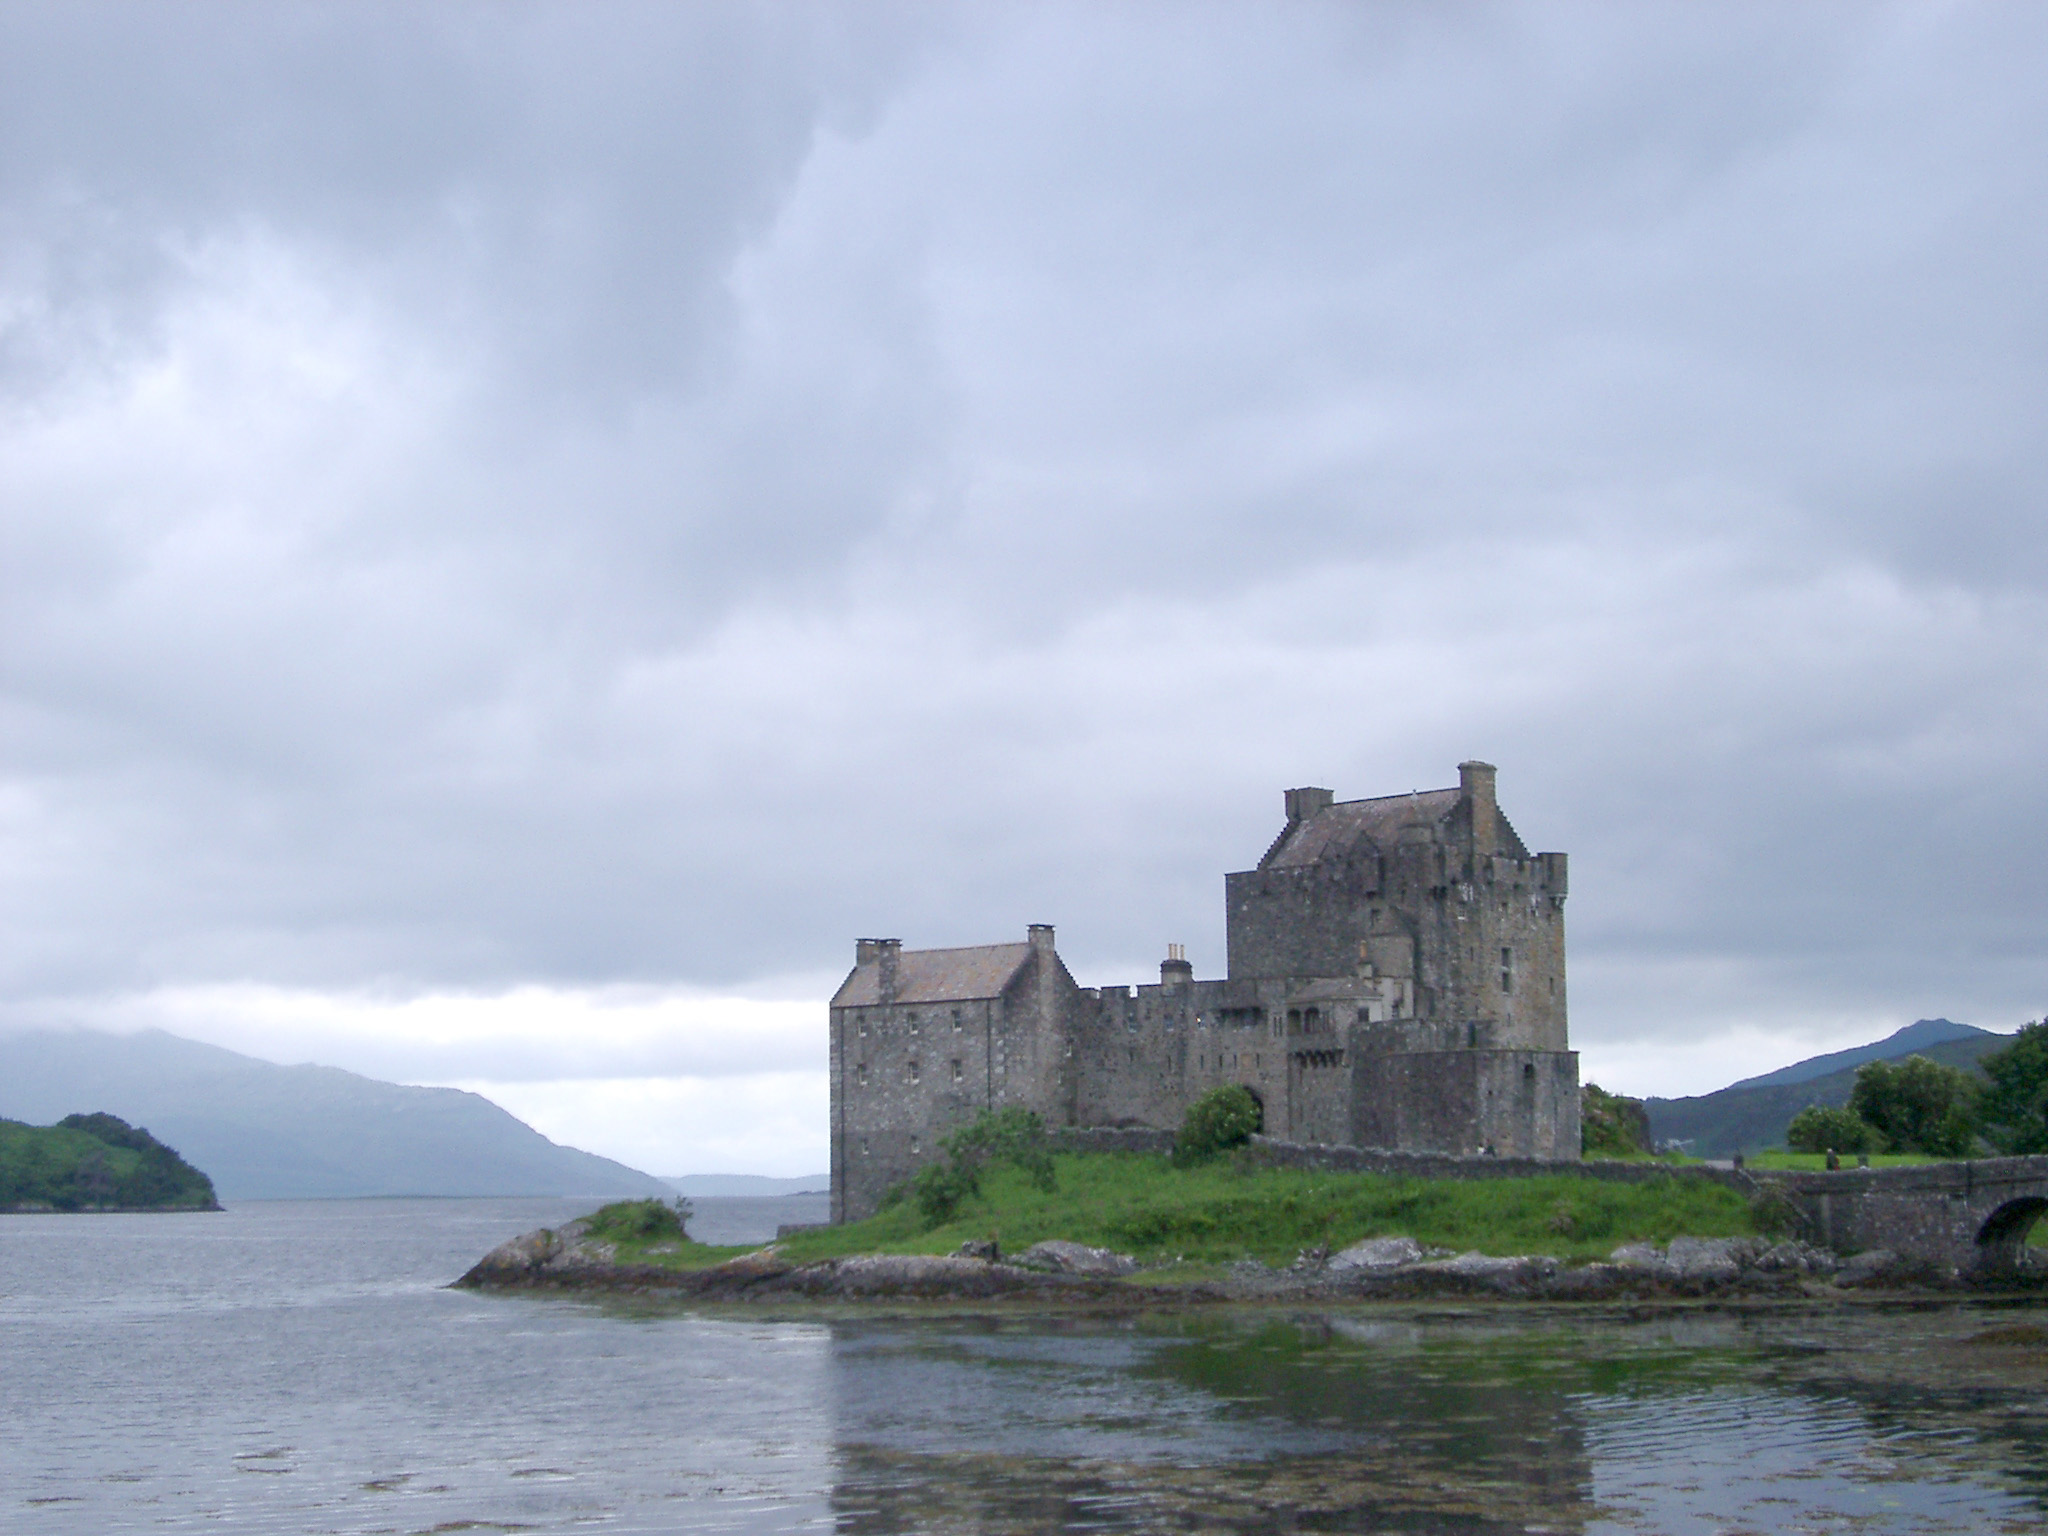 Eilean Donan Castle, tourist attraction, built on a small tidal island in western Highlands of Scotland